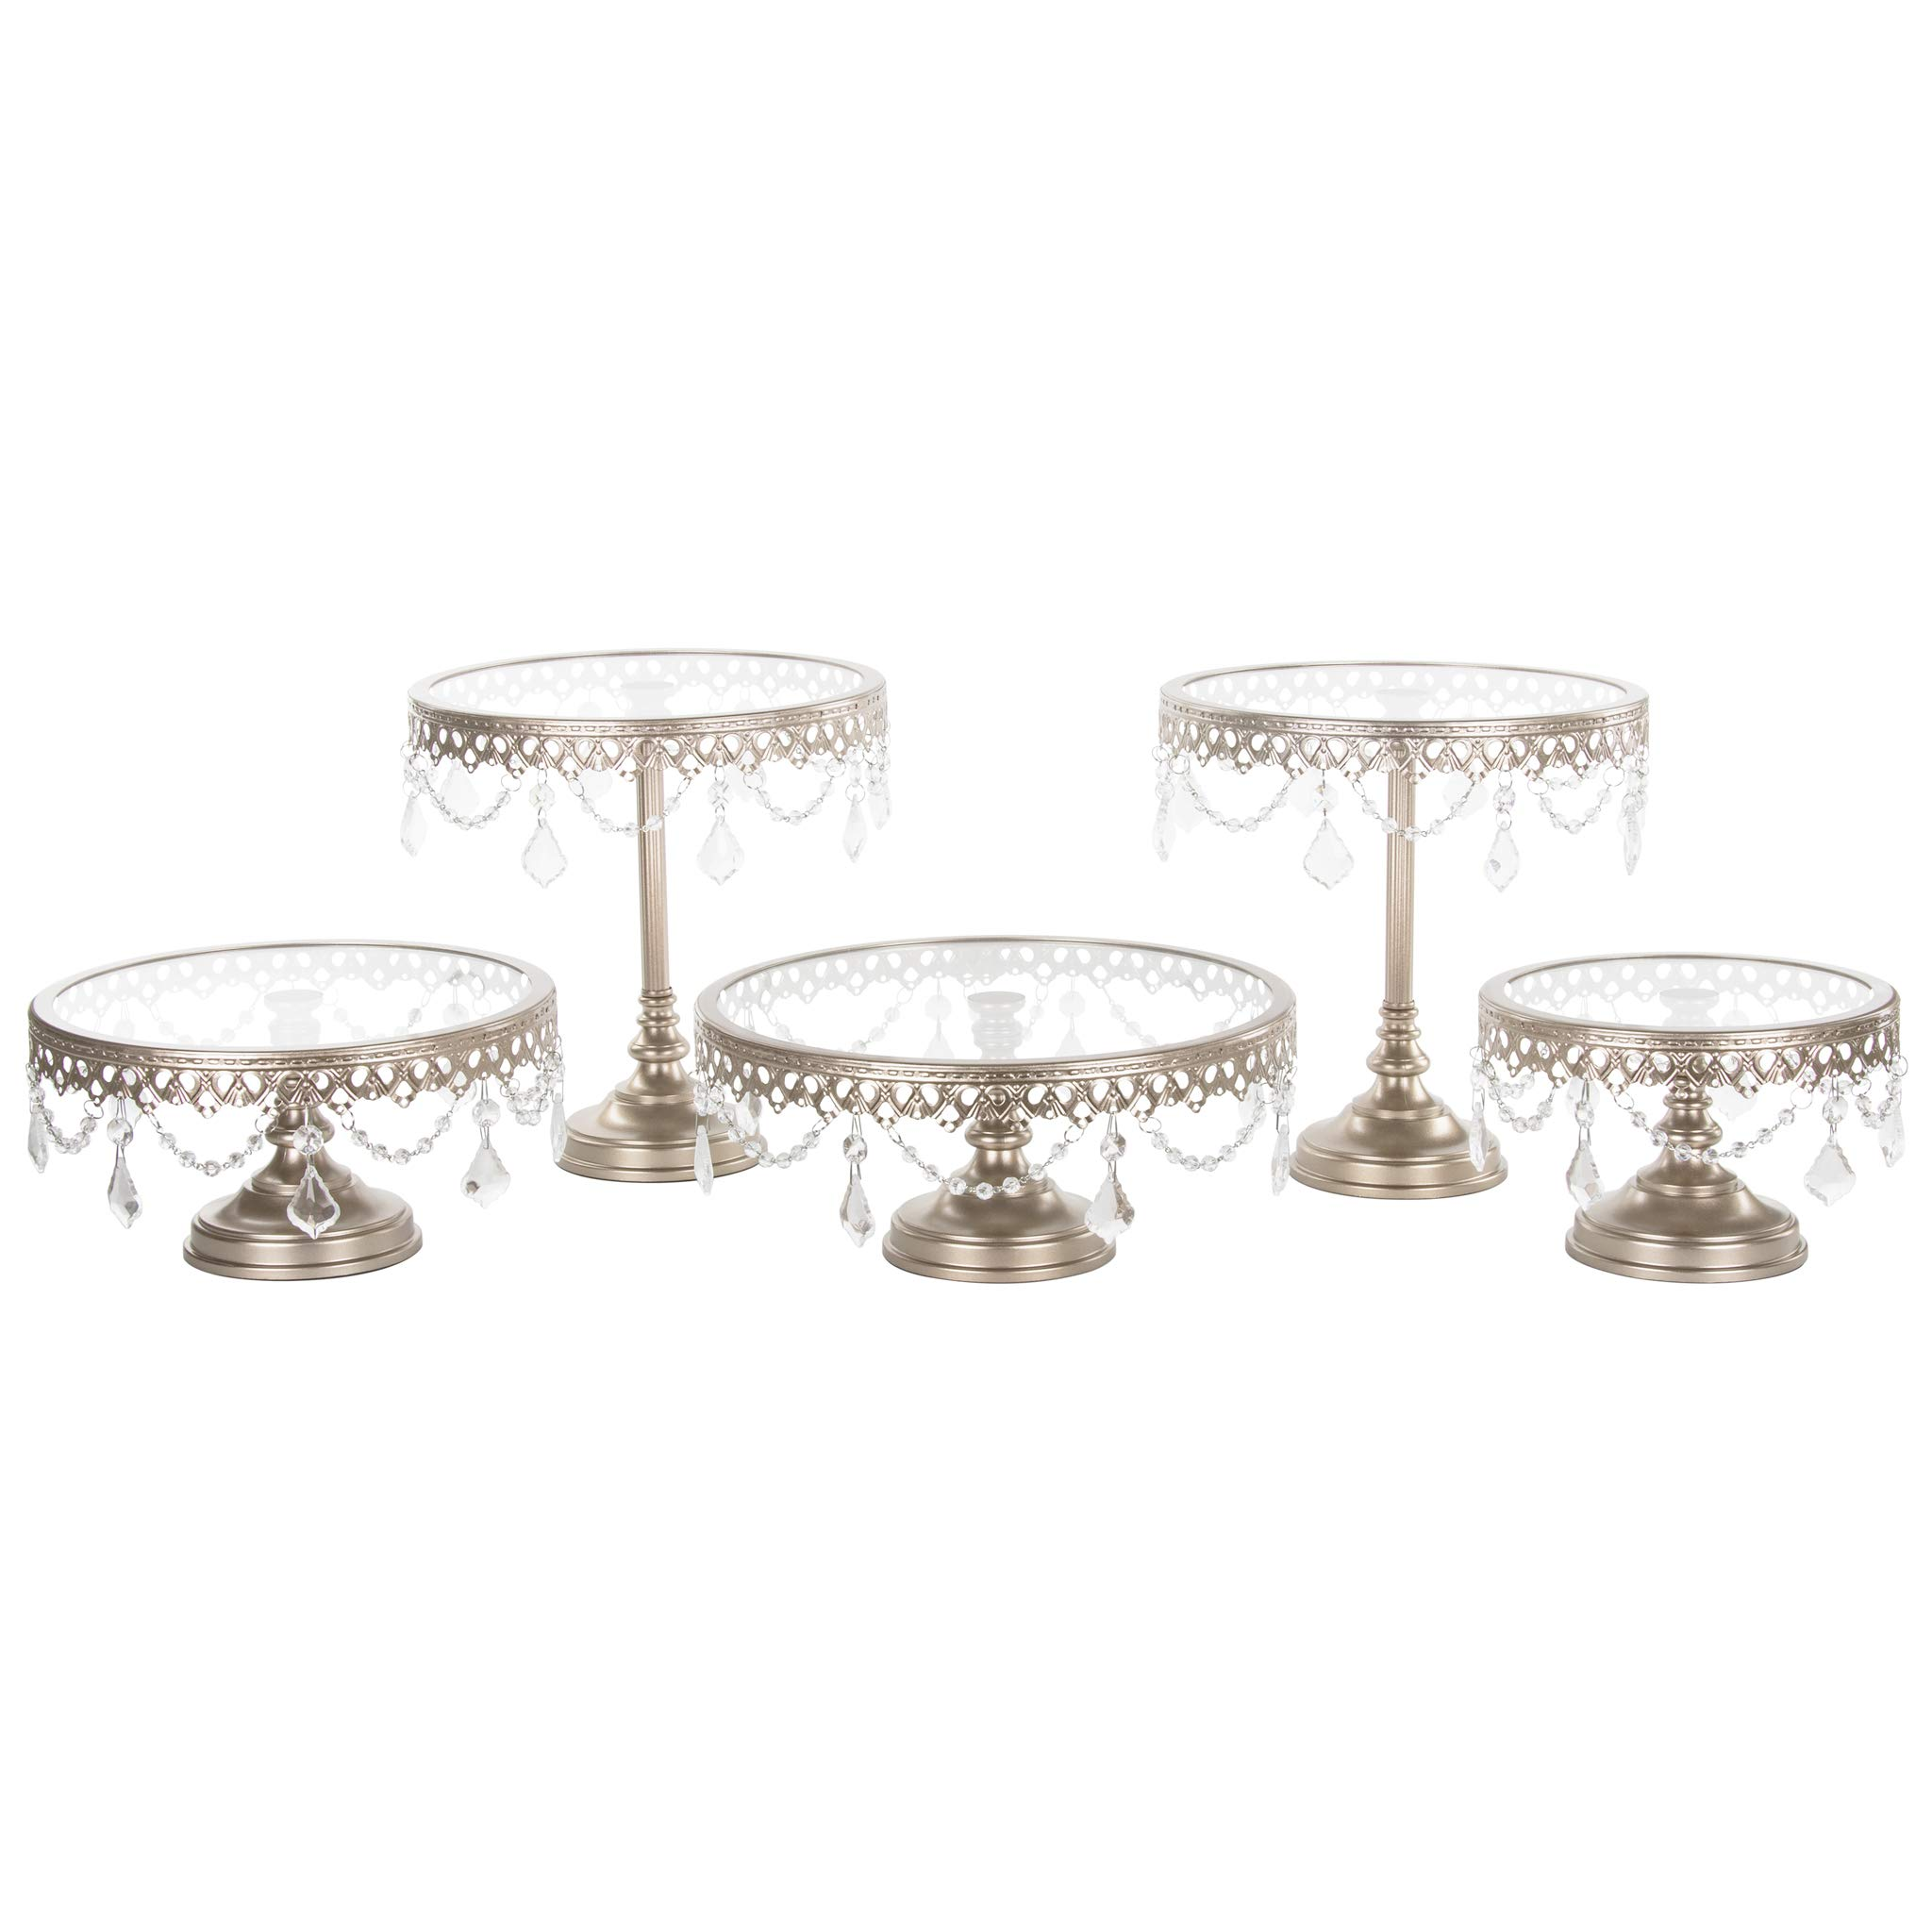 Amalfi Decor Cake Stand Set of 5 Pack, Dessert Cupcake Pastry Candy Cookie Display for Wedding Event Birthday Party, Round Metal Pedestal Holder with Glass Plates and Crystals, Champagne by Amalfi Décor